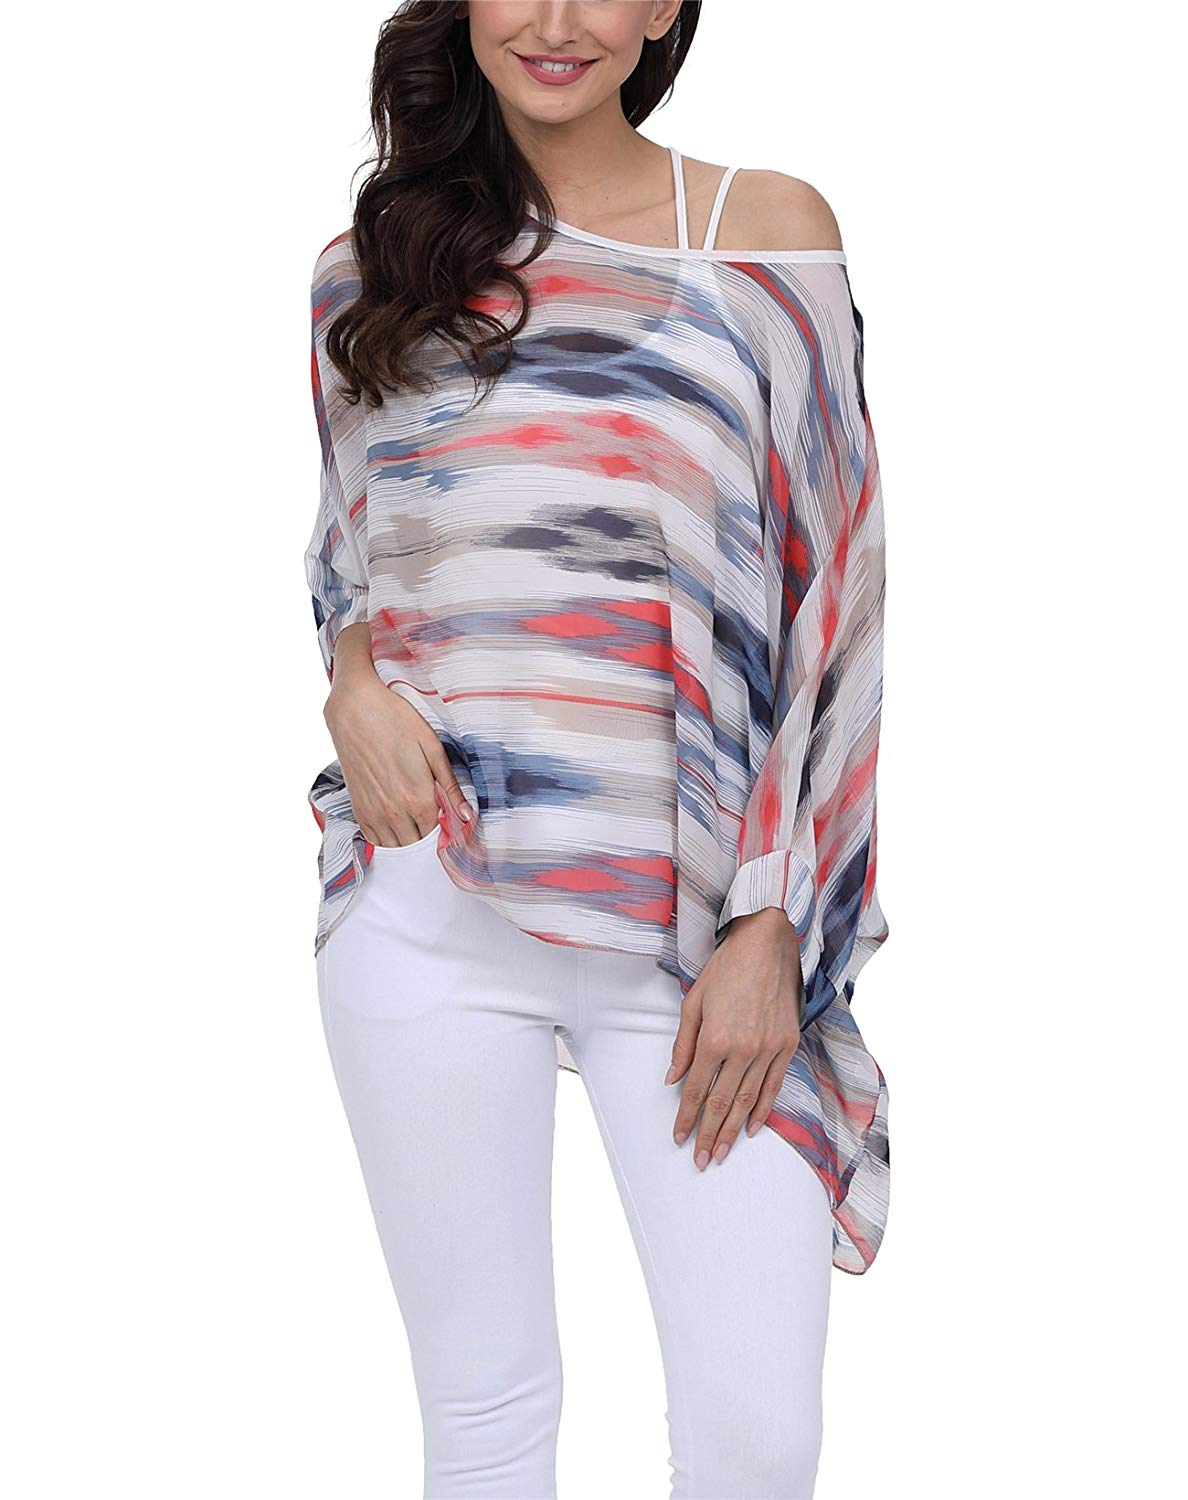 e77658157fa7 Get Quotations · DearQ Boho Floral Chiffon Blouse Casual Plus Size Batwing  Blouse Hippie Semi Sheer Loose Top